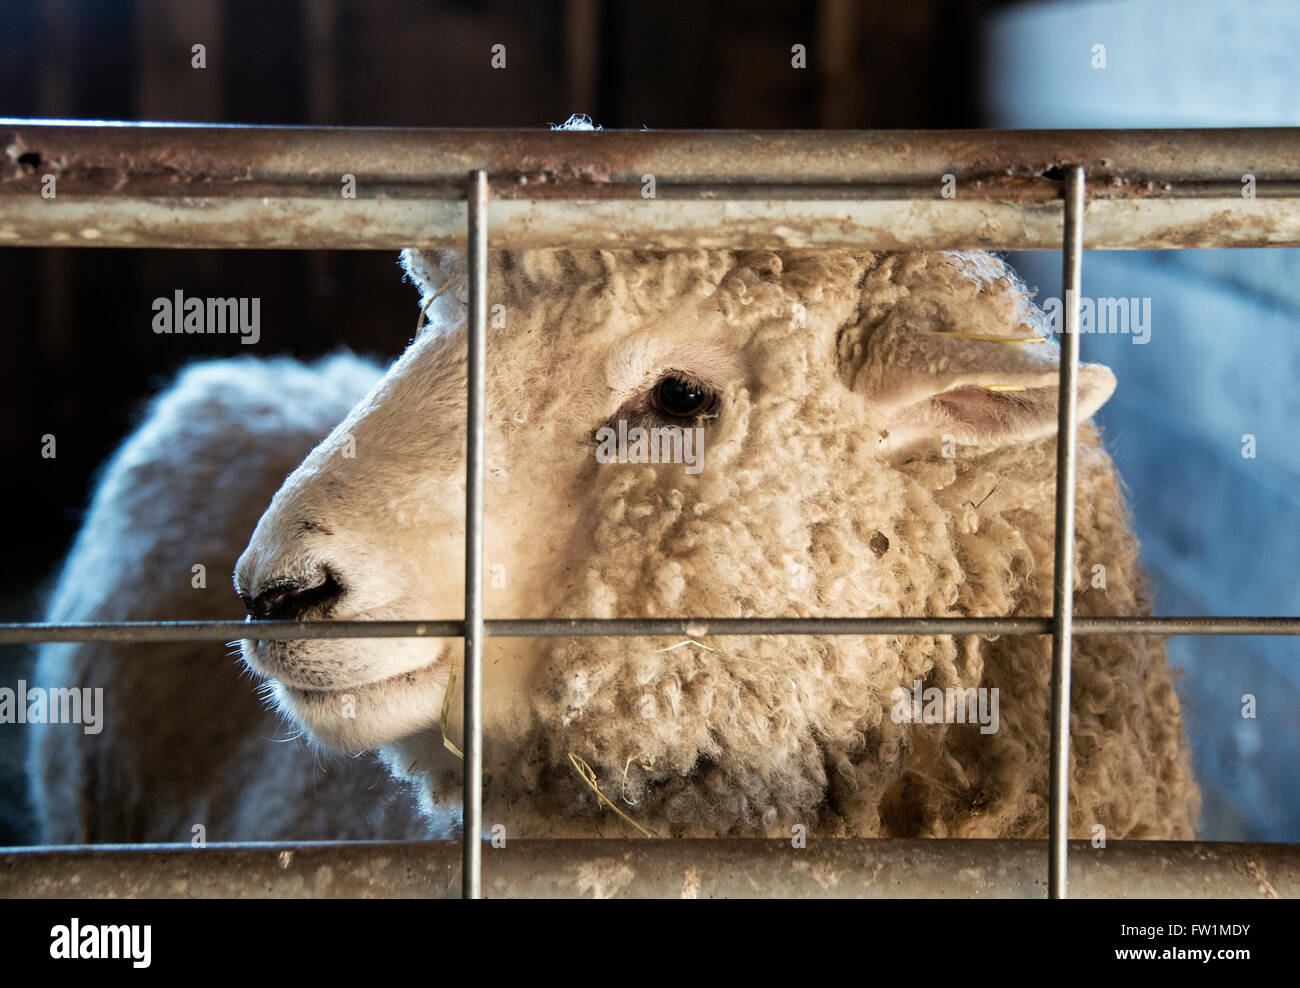 Sheep, Martha's Vineyard, Massachusetts, USA - Stock Image